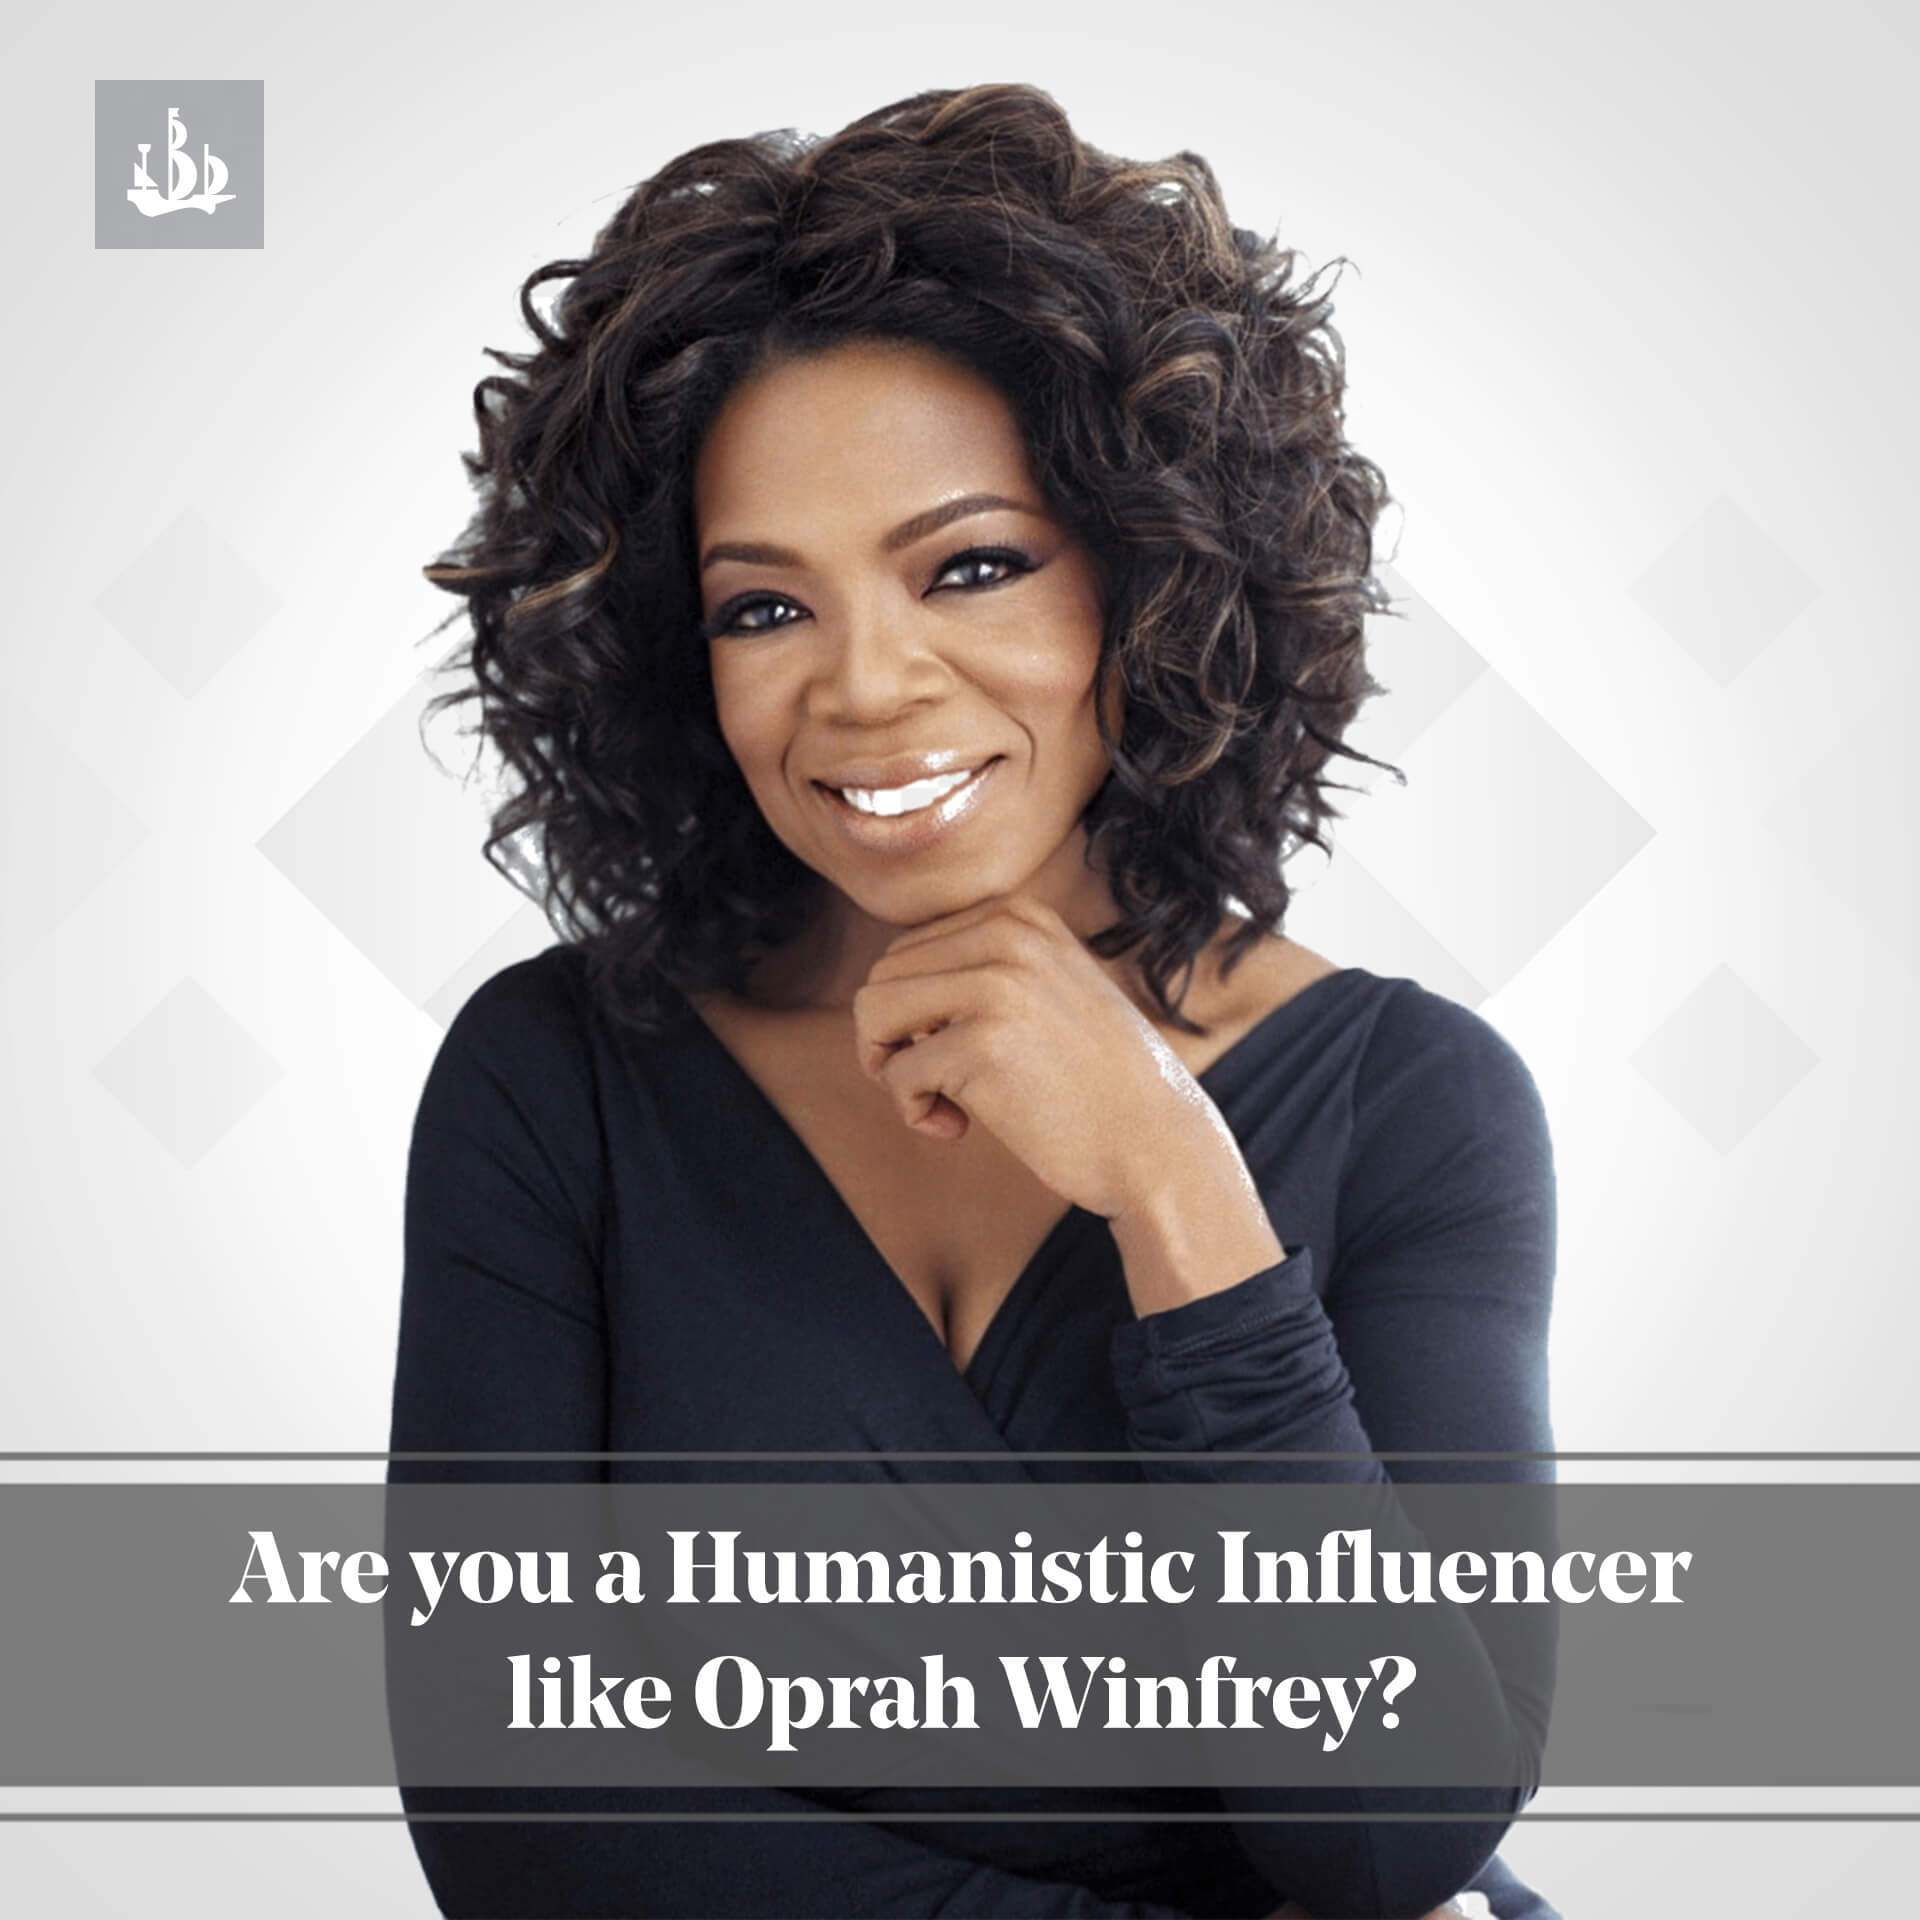 Humanistic Influencer